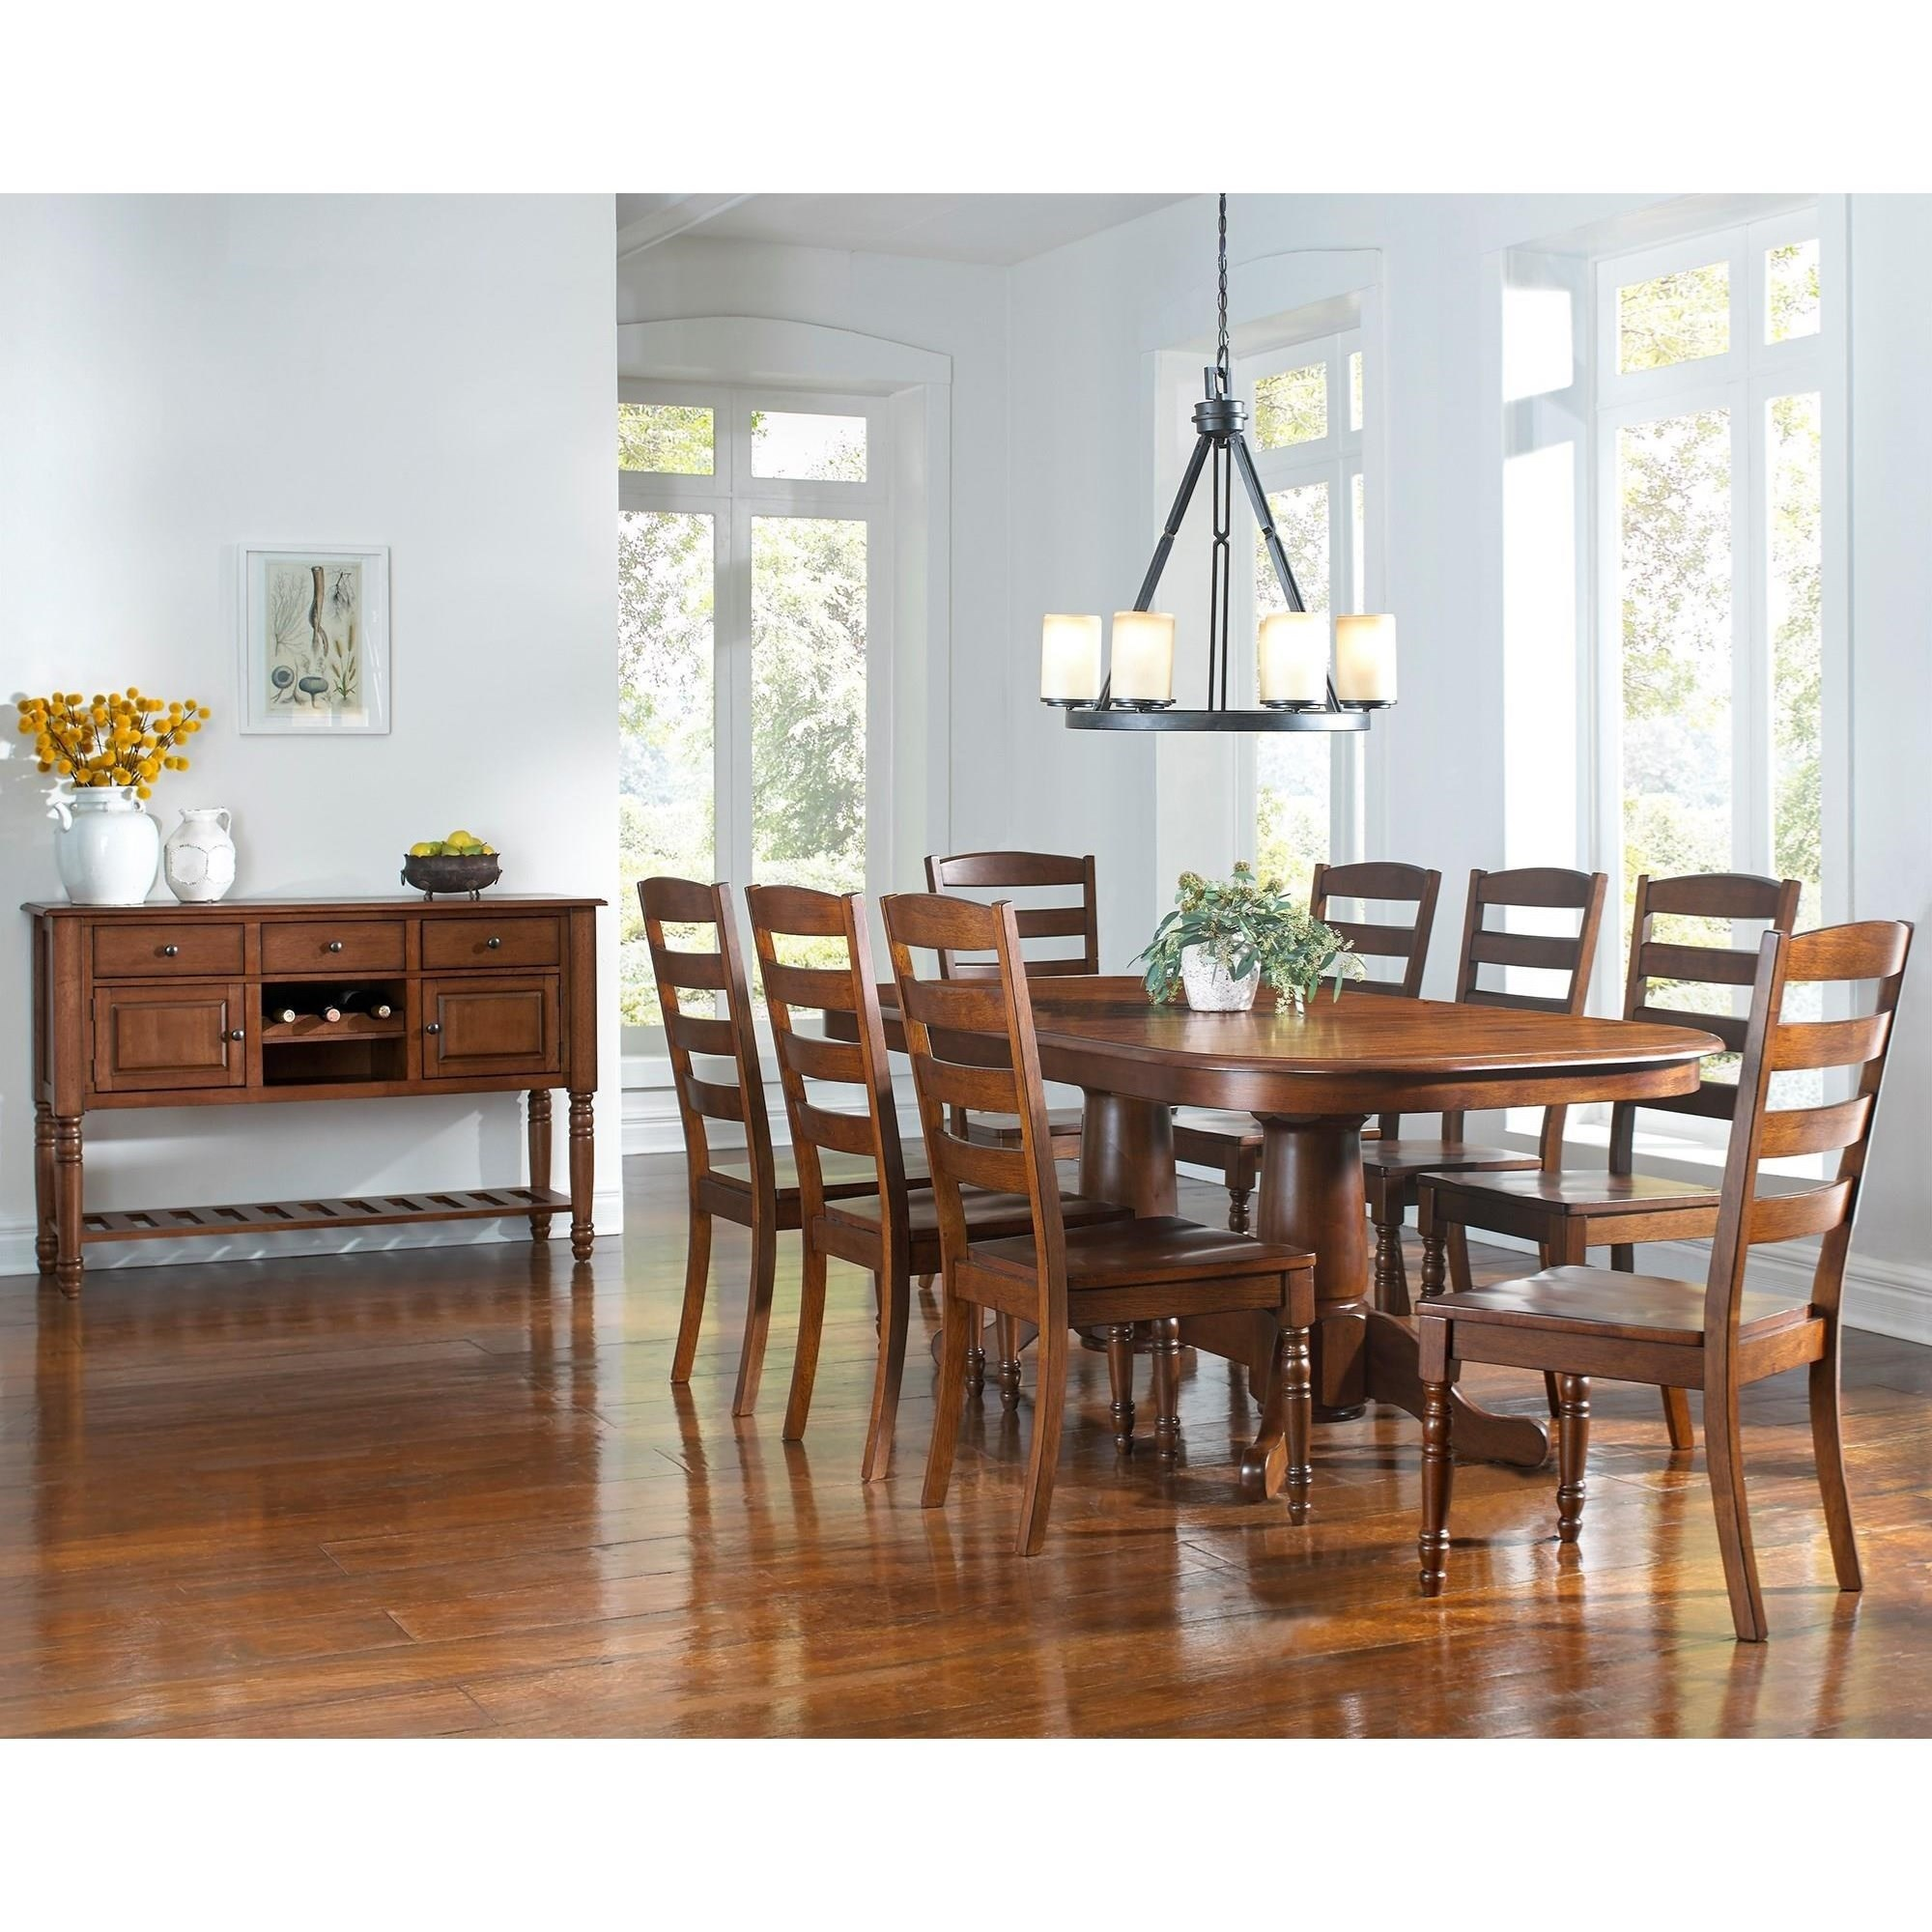 AAmerica Roanoke Casual Dining Room Group Value City